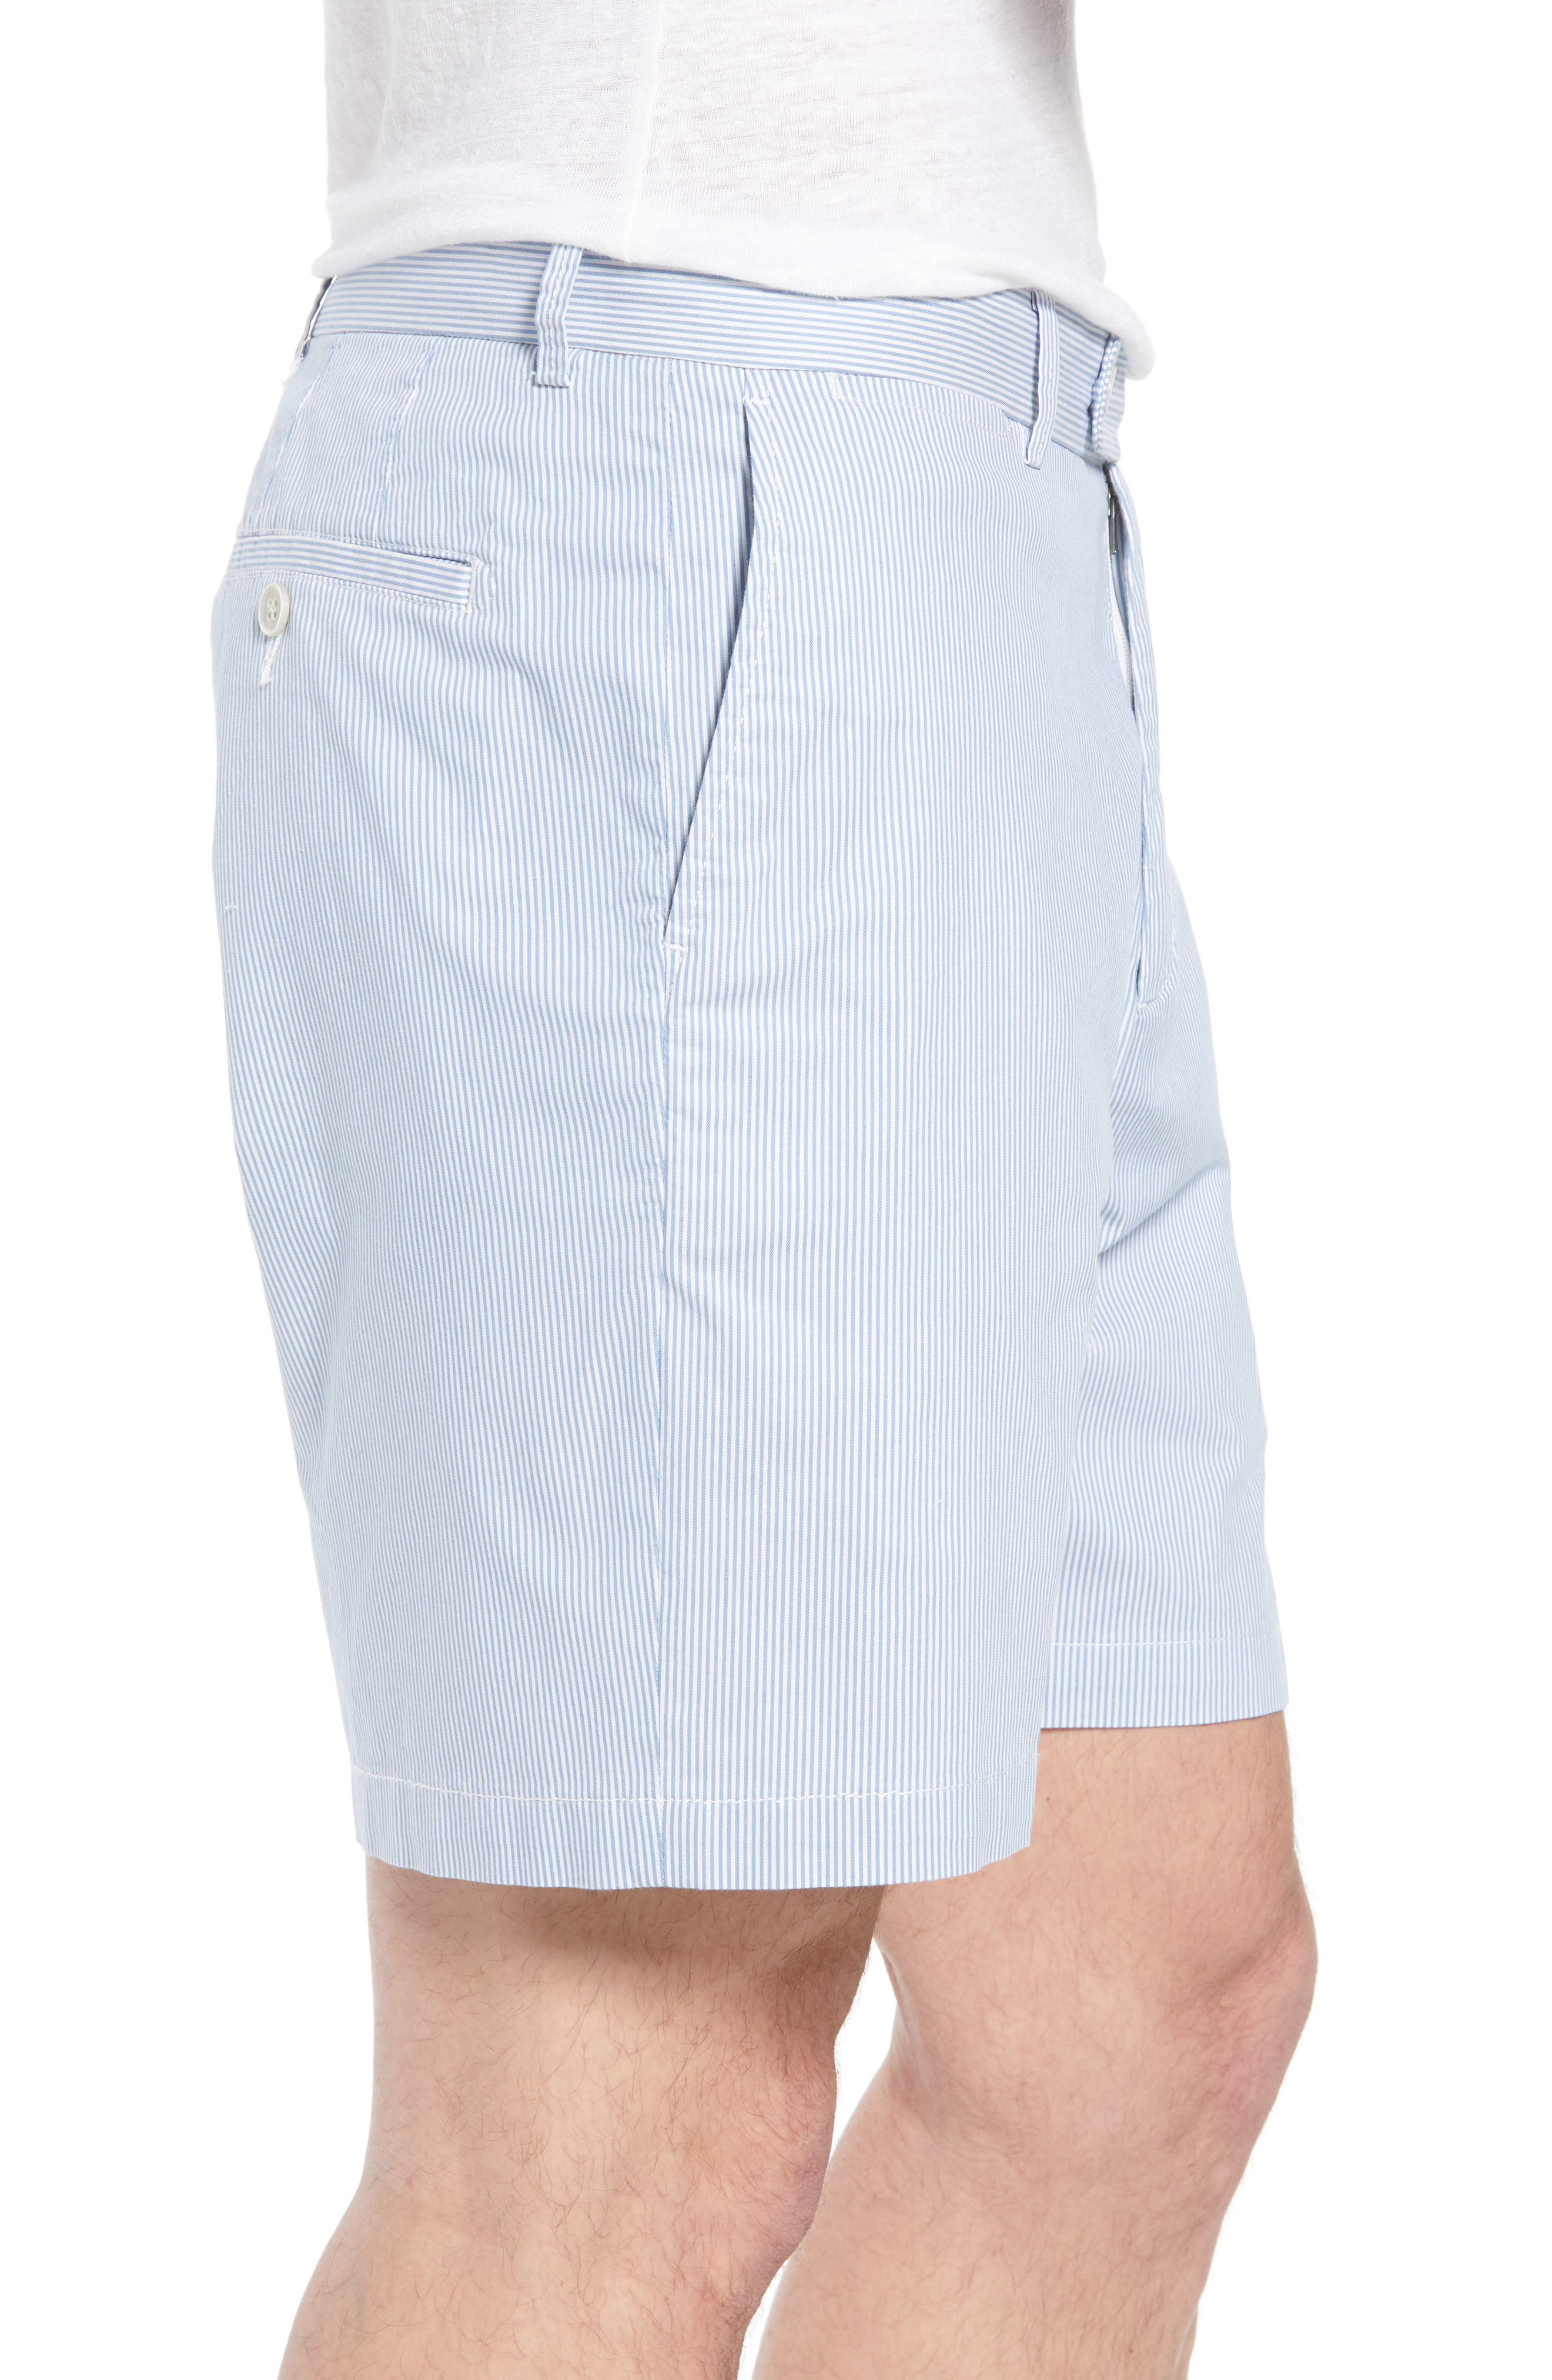 Summer Pinstripe Flat Front Shorts,                             Alternate thumbnail 3, color,                             439